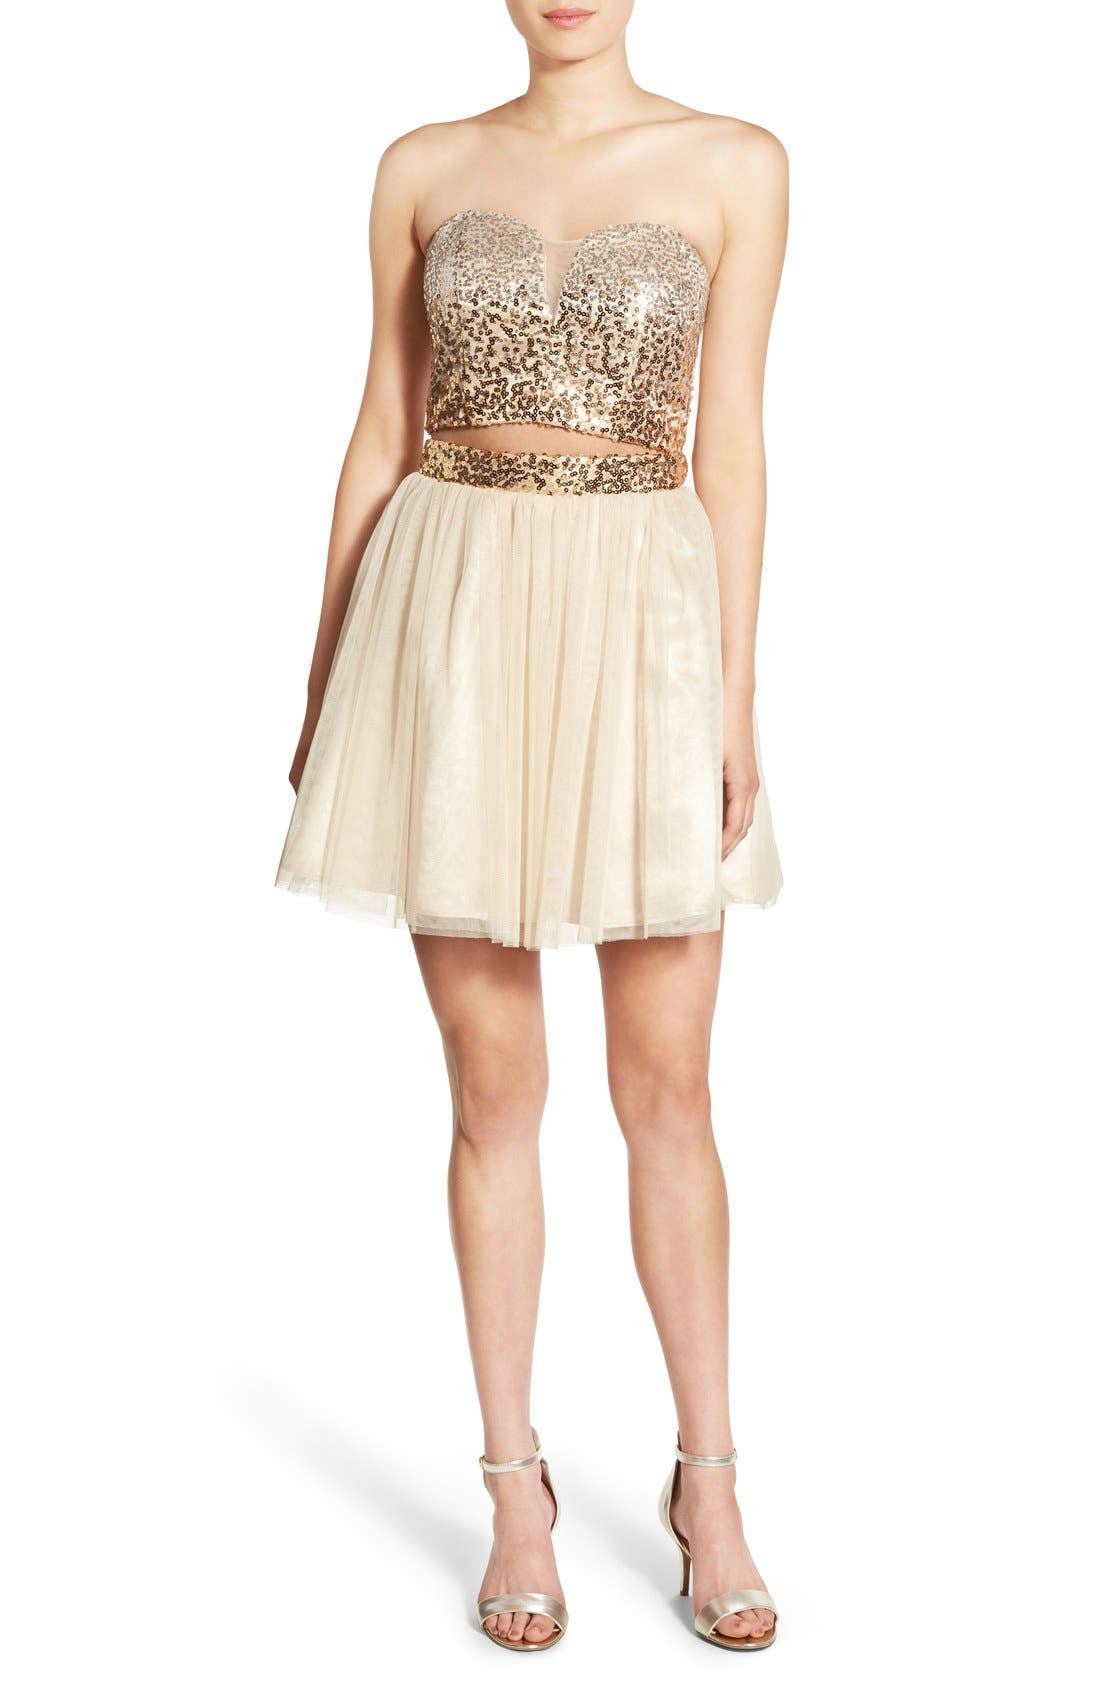 Alternate Image 1 Selected - Steppin Out Embellished Two-Piece Skater Dress